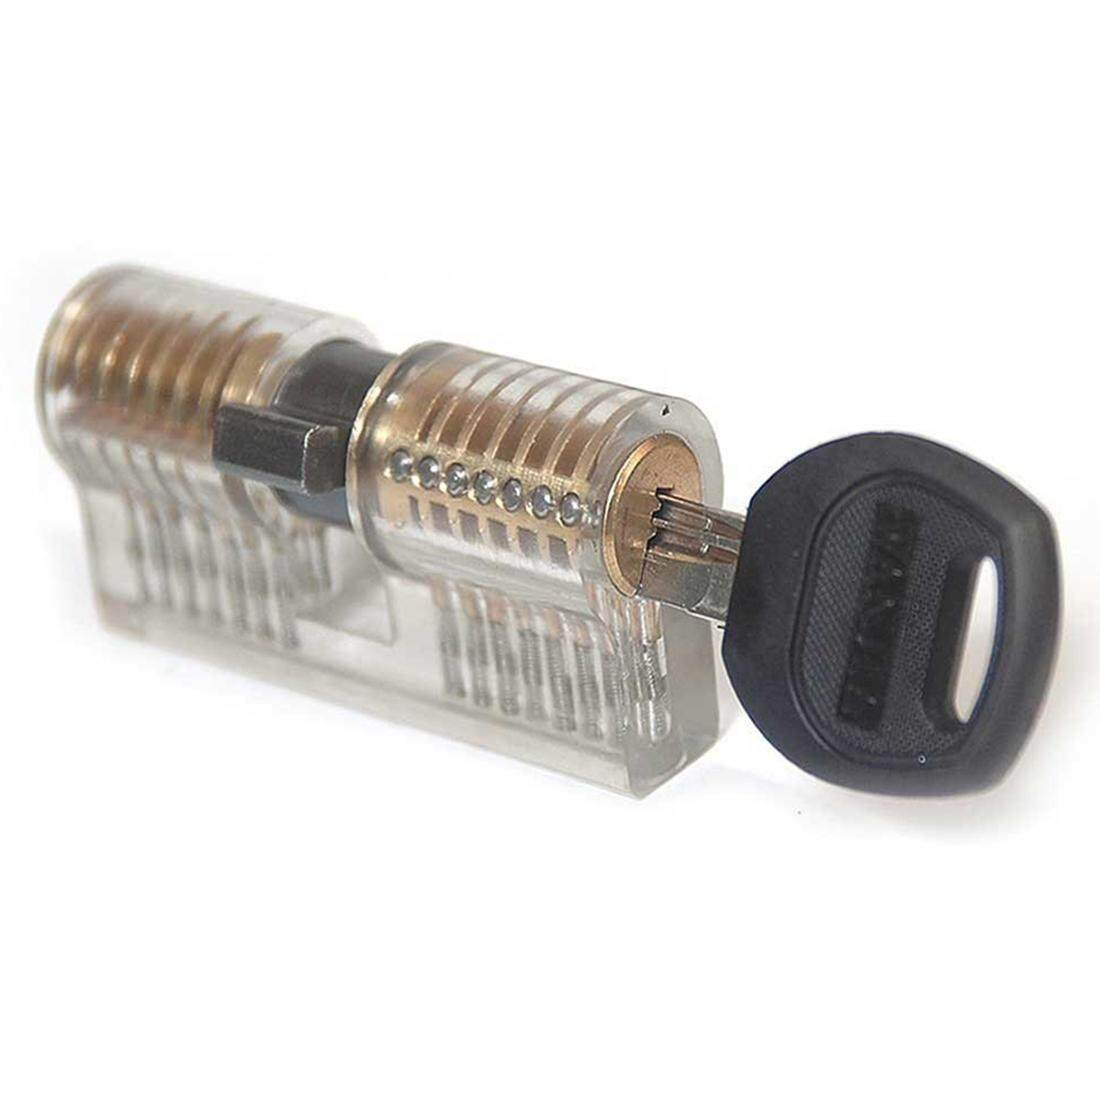 Transparent Cutaway Lock Inside View Practice Training Skill For Locksmith